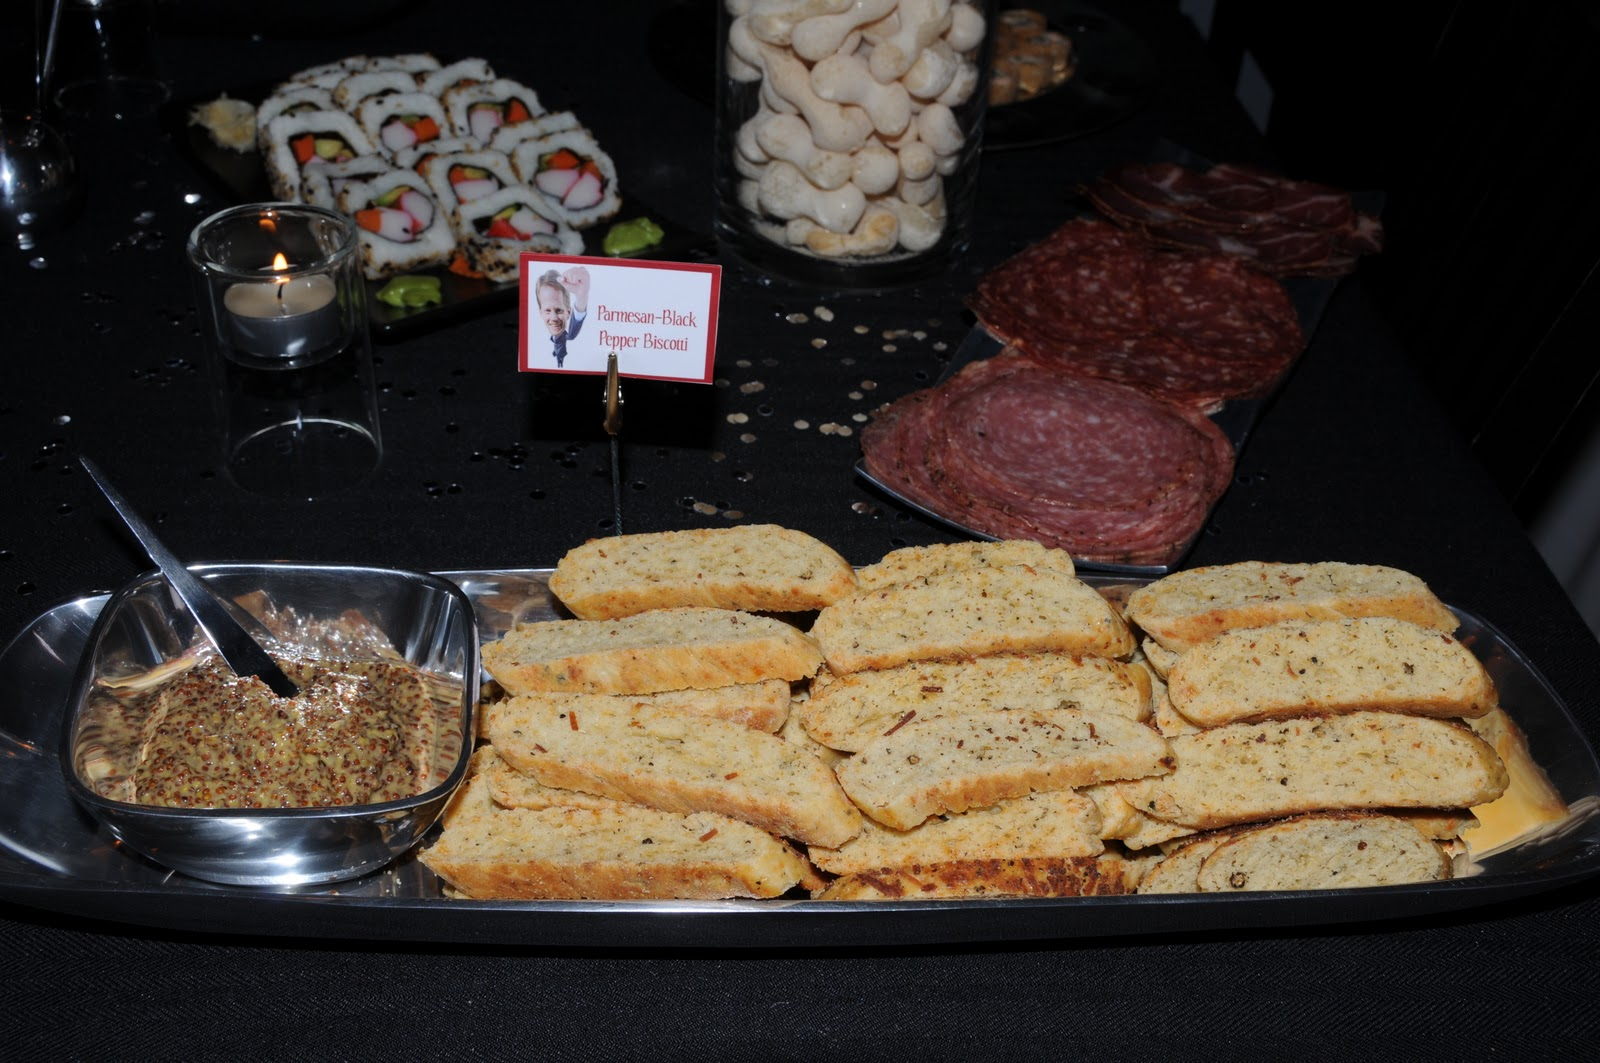 Parmesan-Black Pepper Biscotti with Moutarde à l'Ancienne